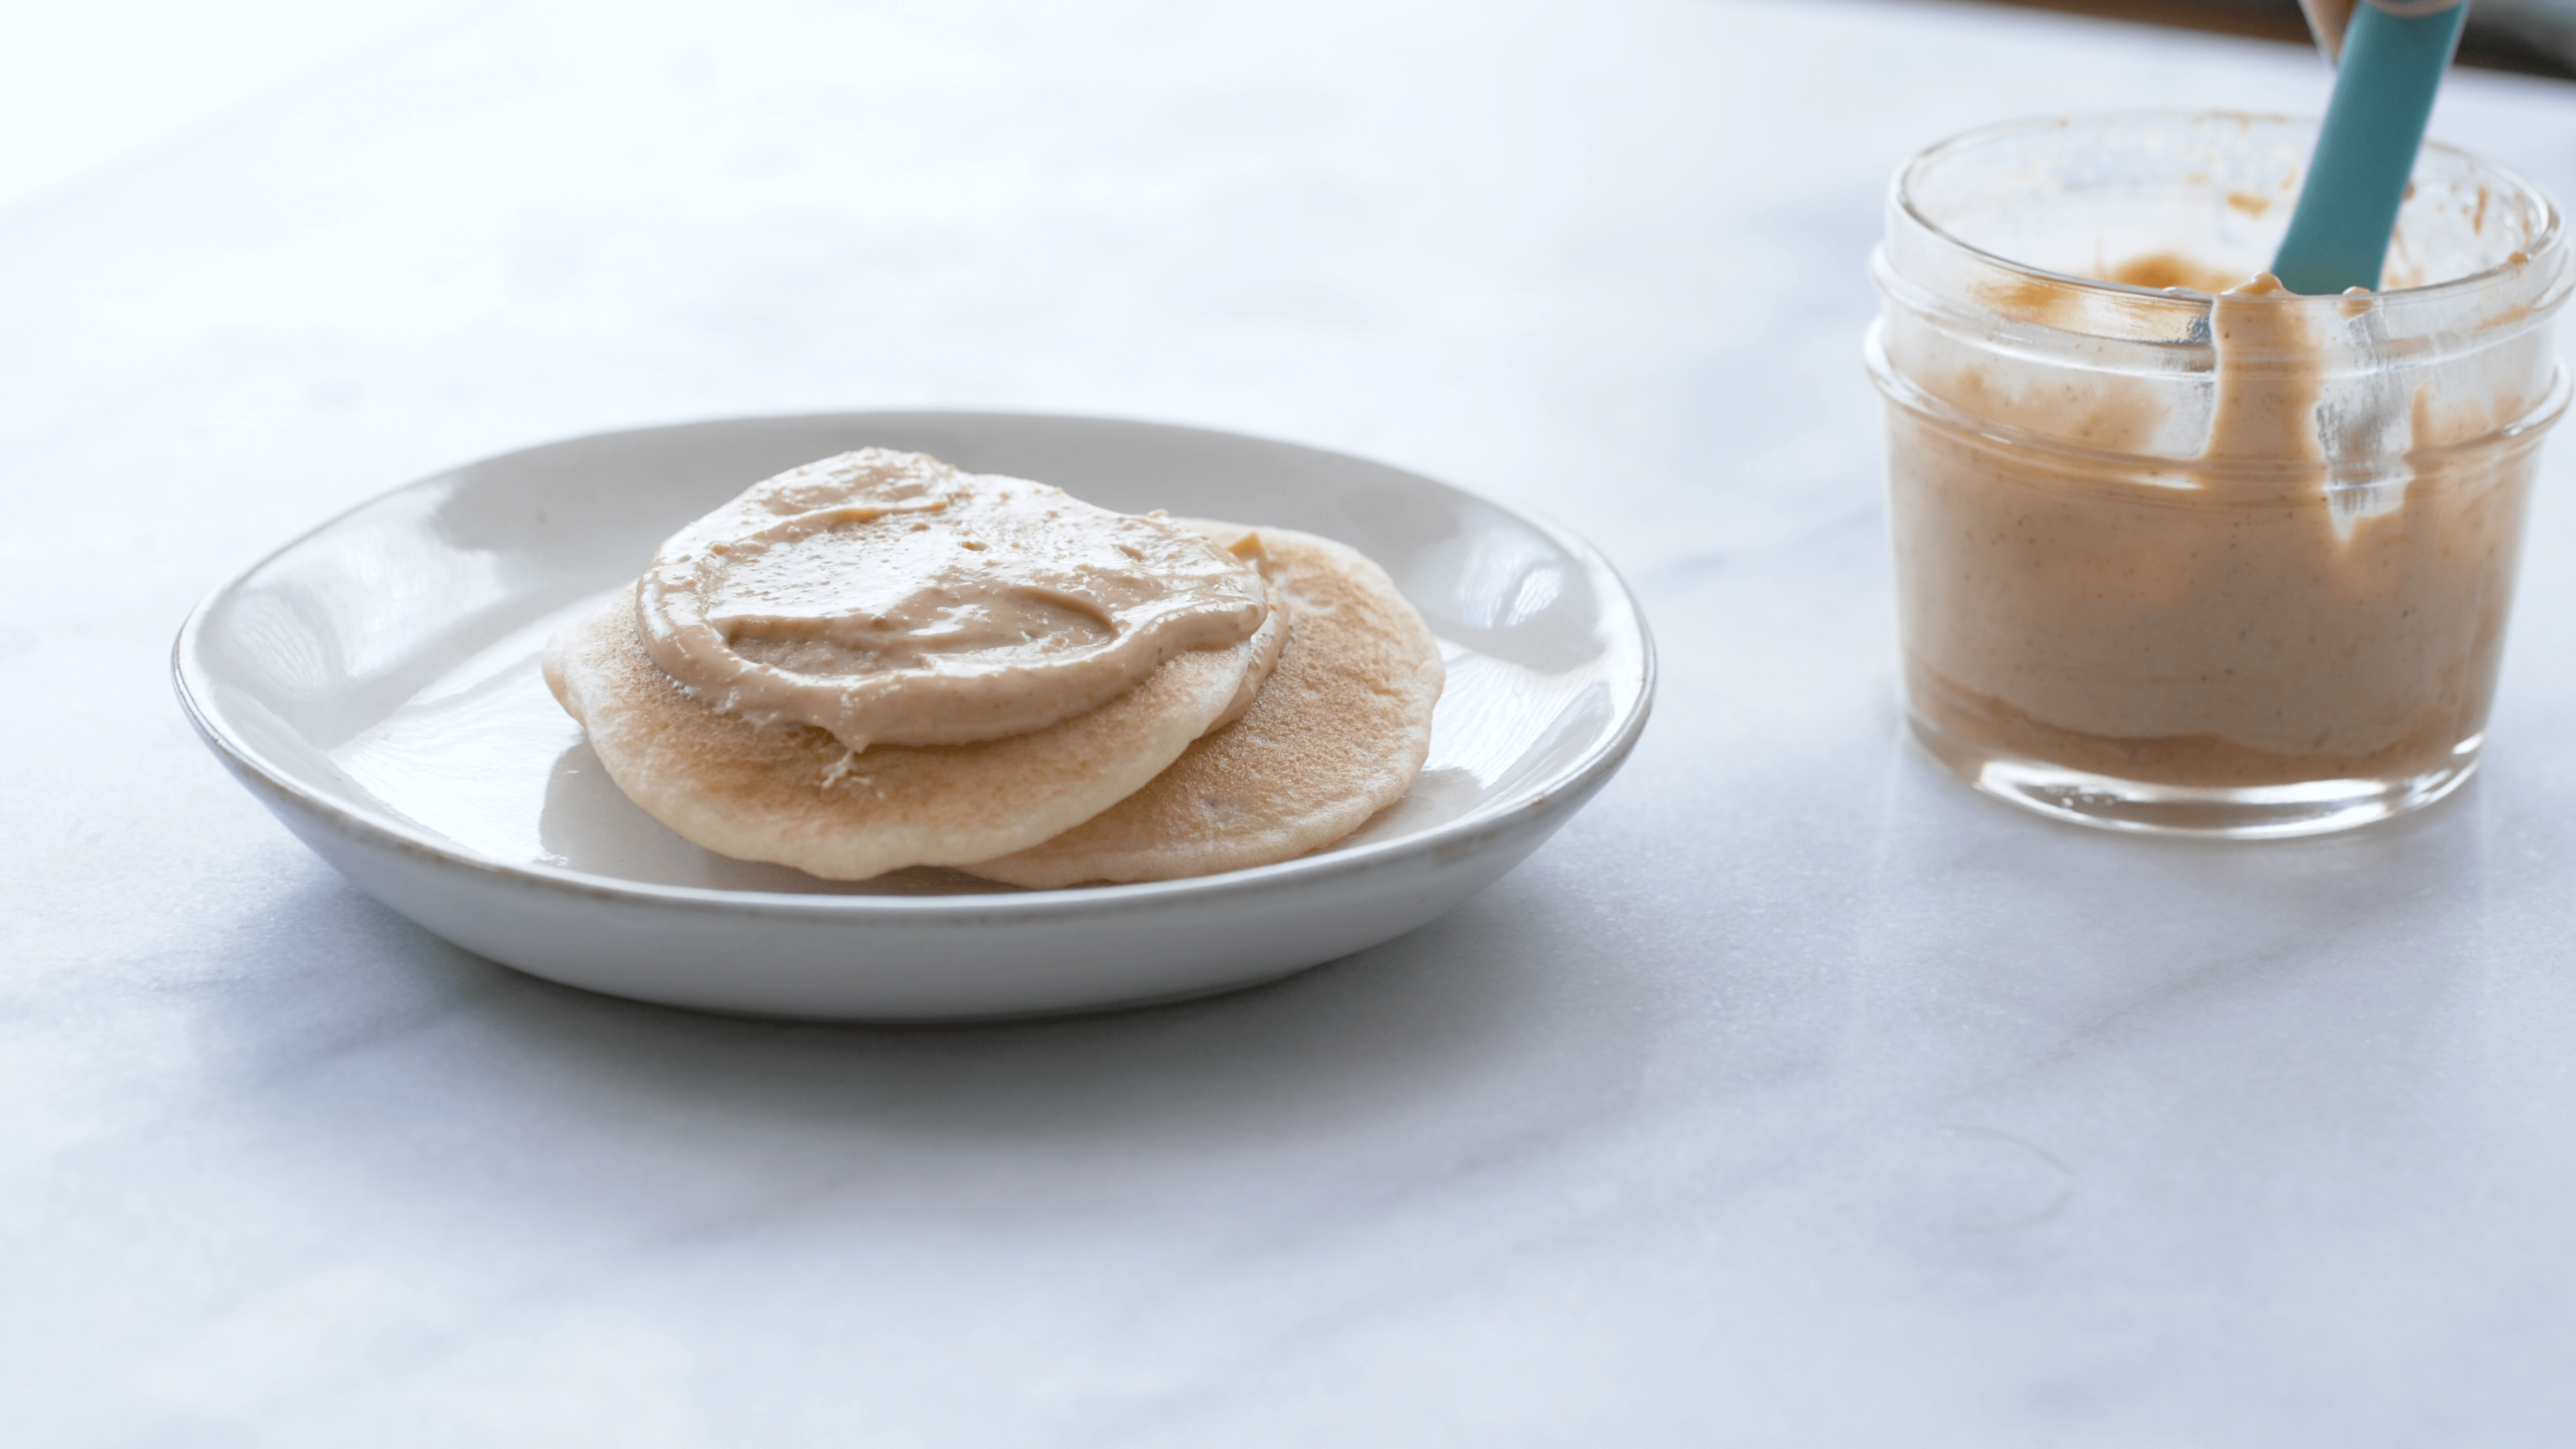 Fluffy PB spread on pancakes-- whip PB with hot water. With the latest research suggesting early peanut introduction, we've rounded up 8 ways on how to feed peanut butter to baby.